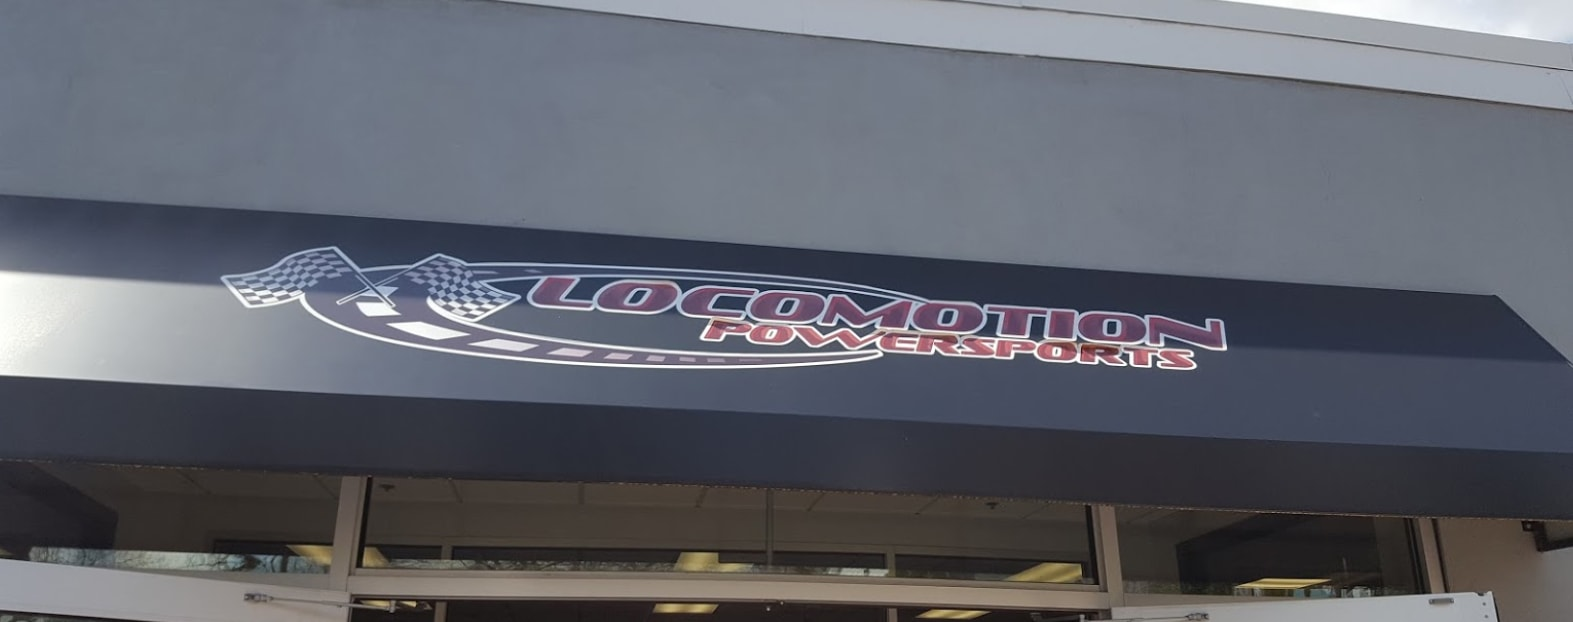 Locomotion Powersports storefront